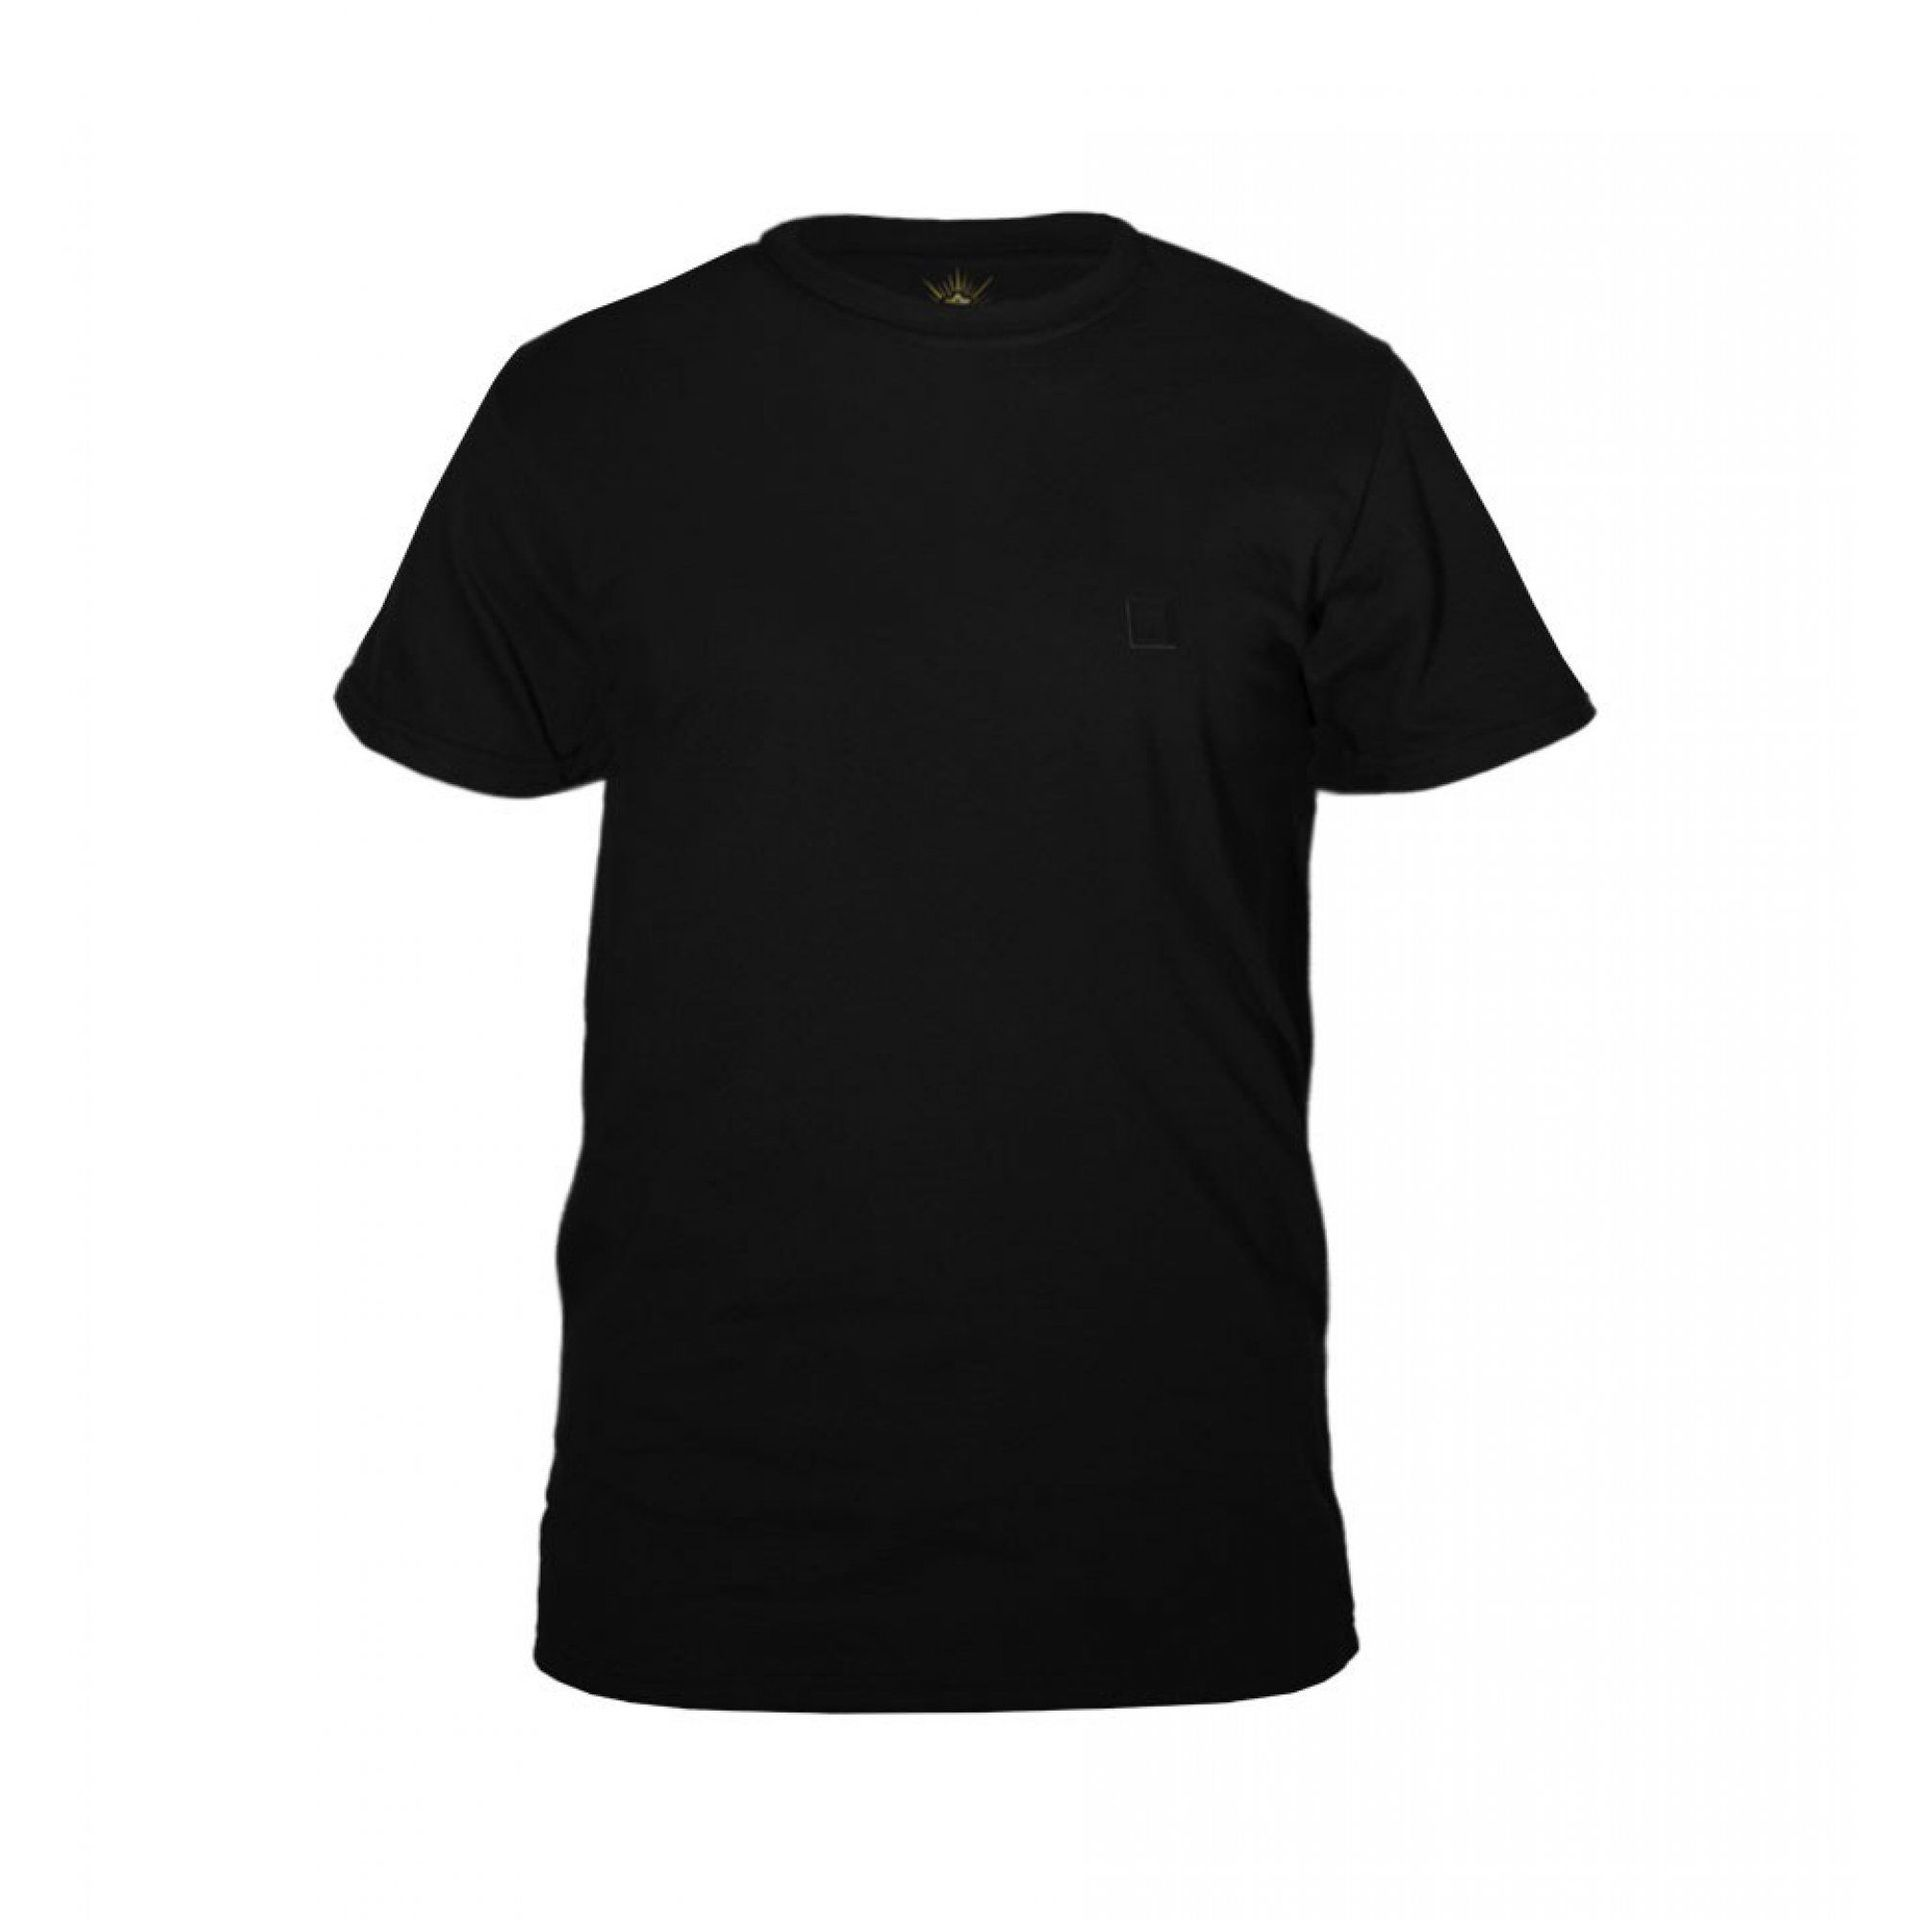 T-SHIRT MAJESTY CAFE RACER BLACK